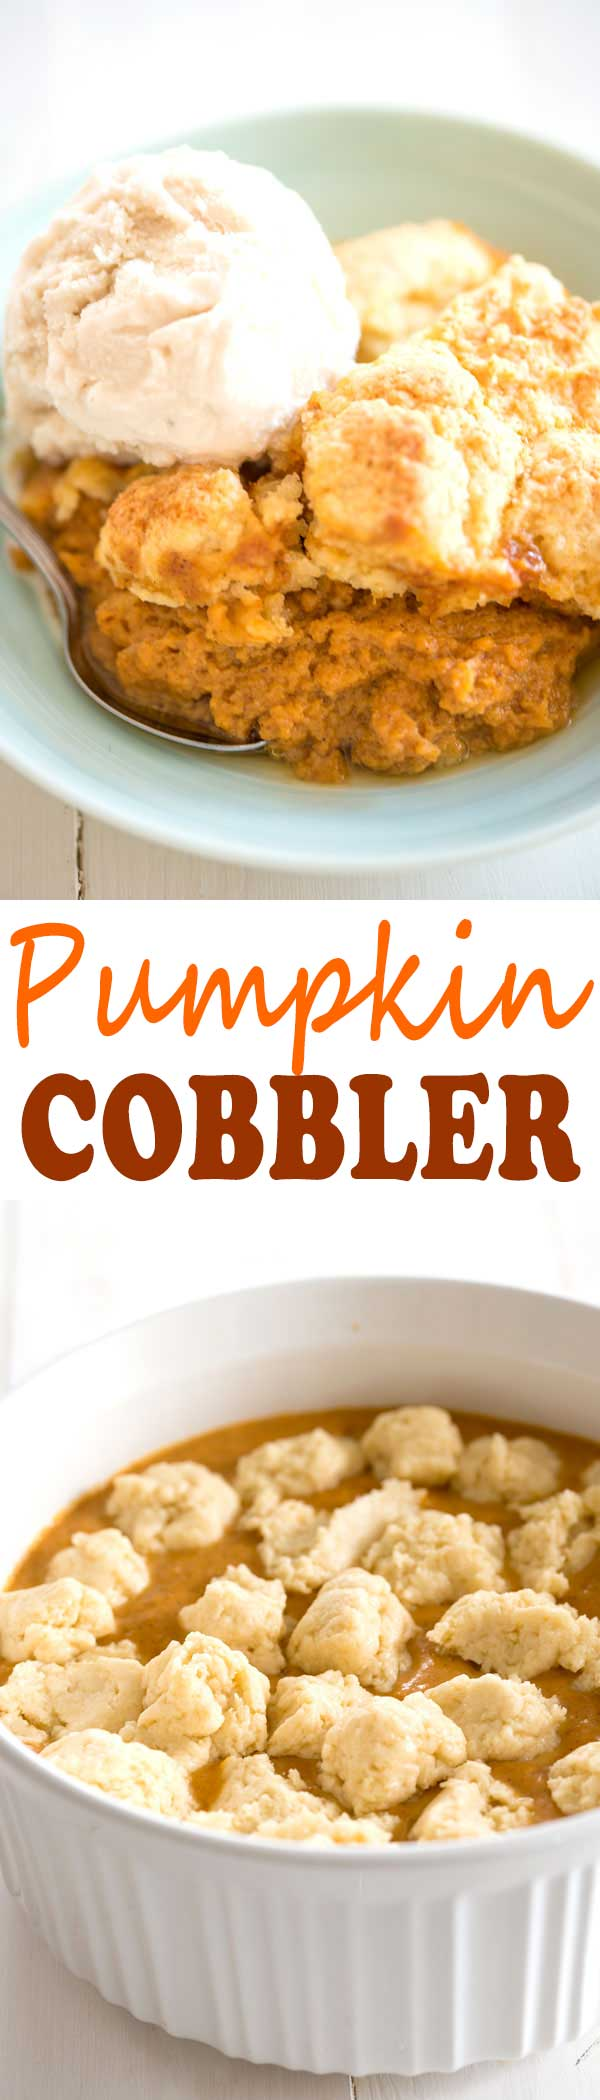 Pumpkin Cobbler recipe is the perfect fall dessert and easier than pie! | #dessert #thanksgiving #pumpkin #cobbler #recipe